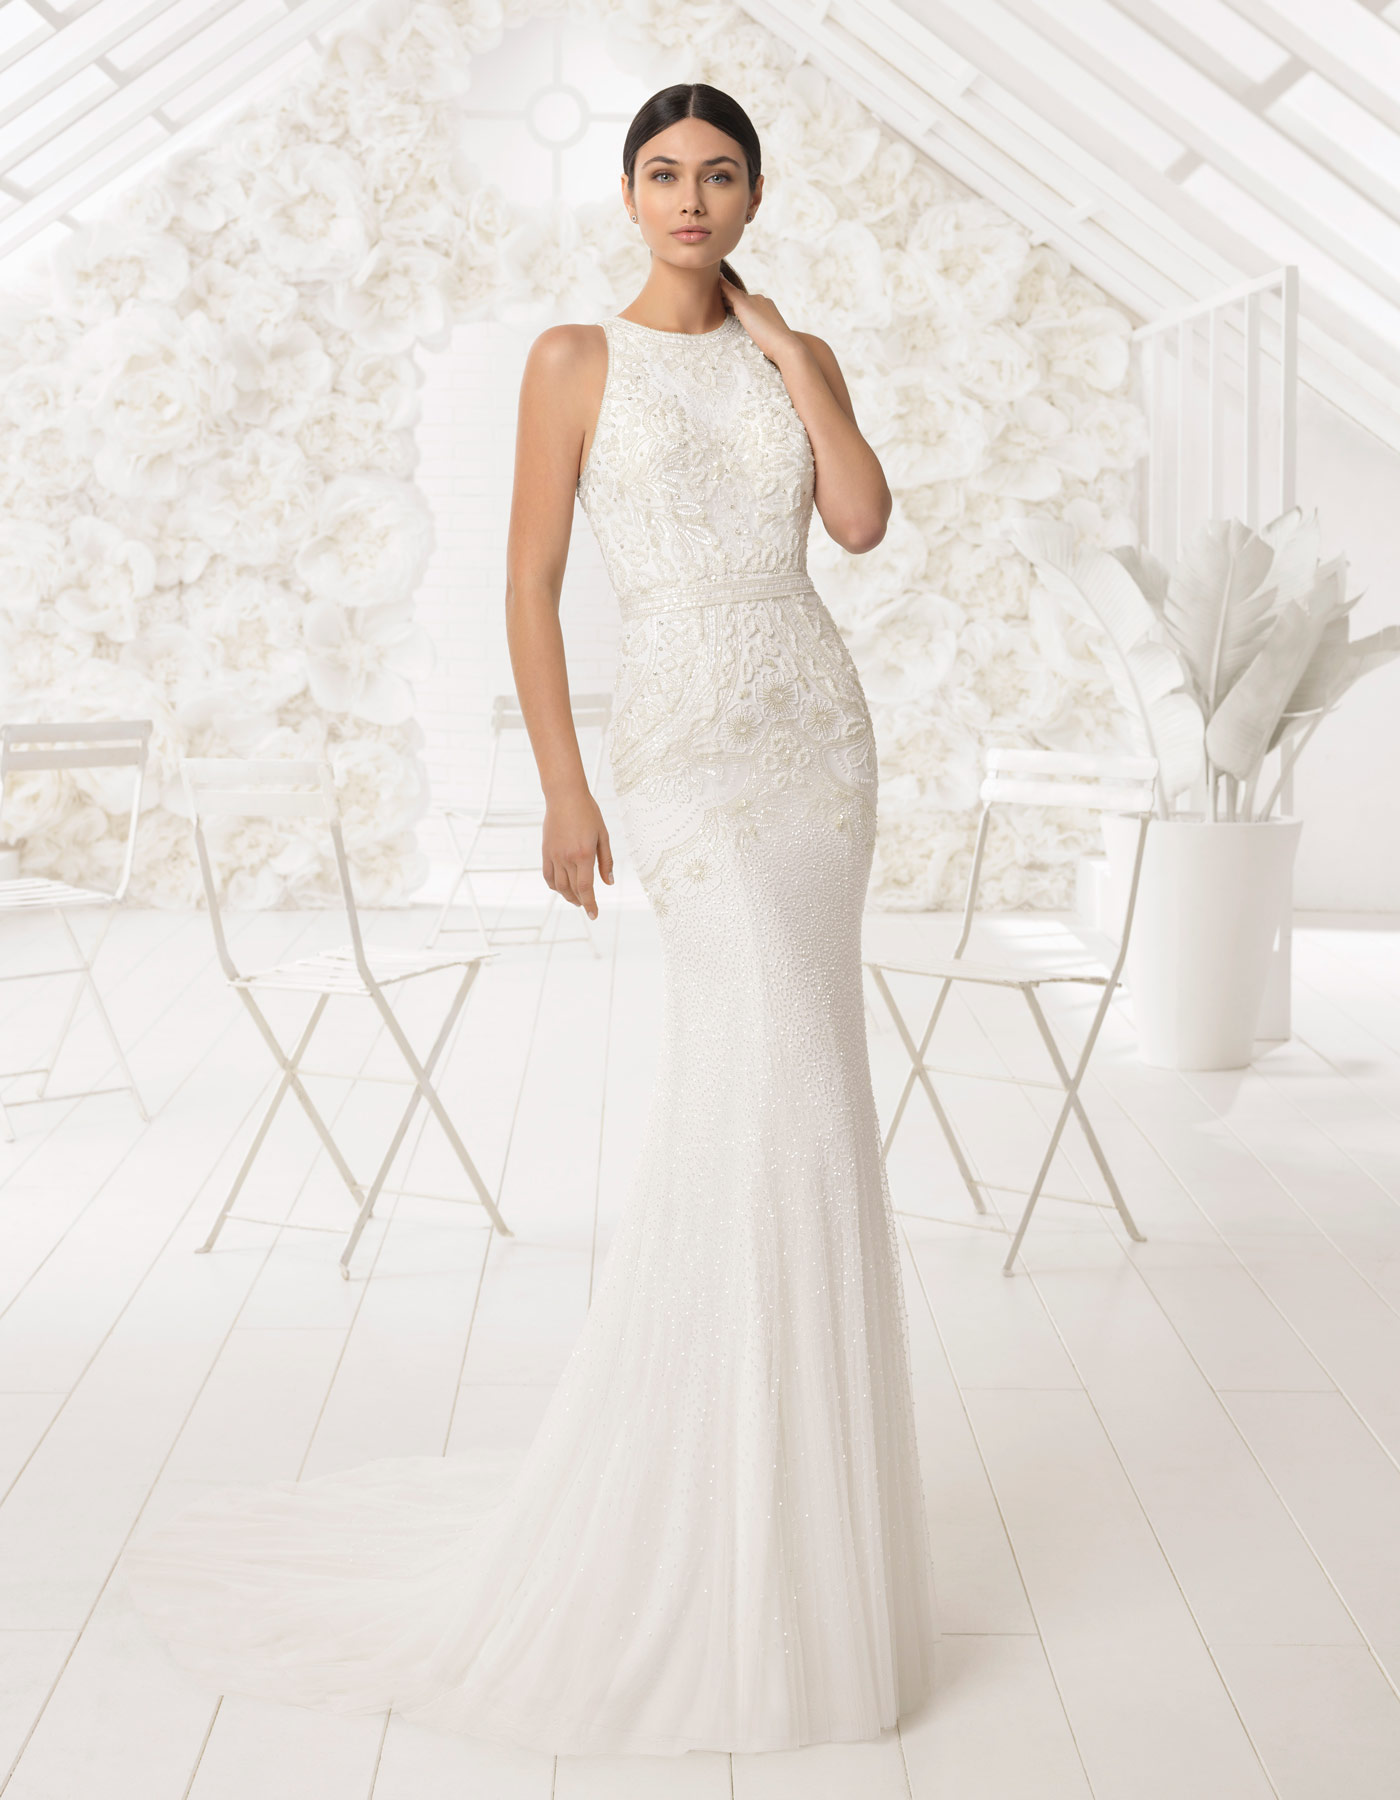 Beaded slinky wedding dress | Lori Rosa Clara Soft